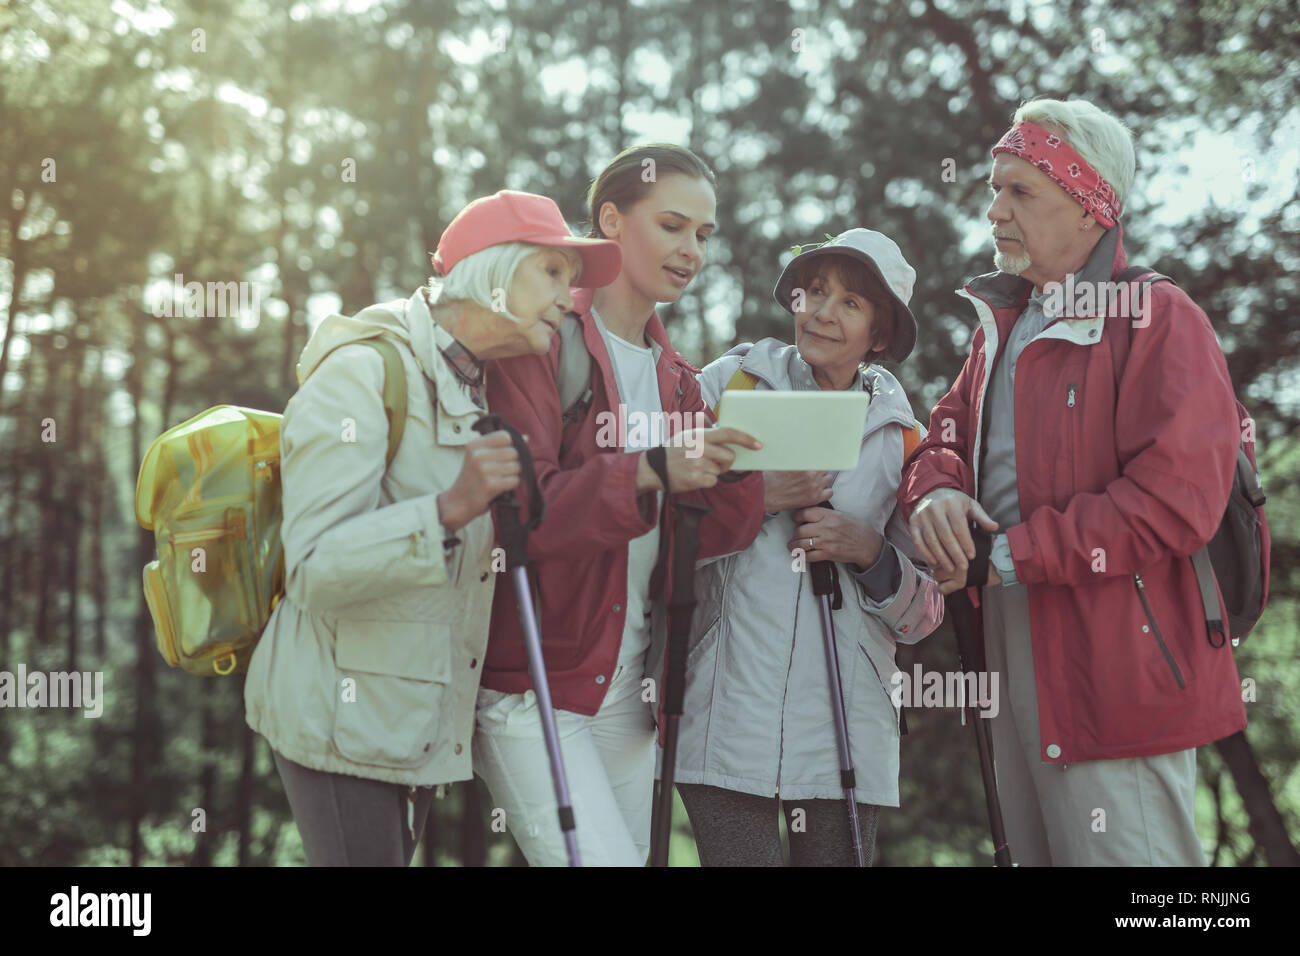 Group of tourists using interactive map for hiking - Stock Image